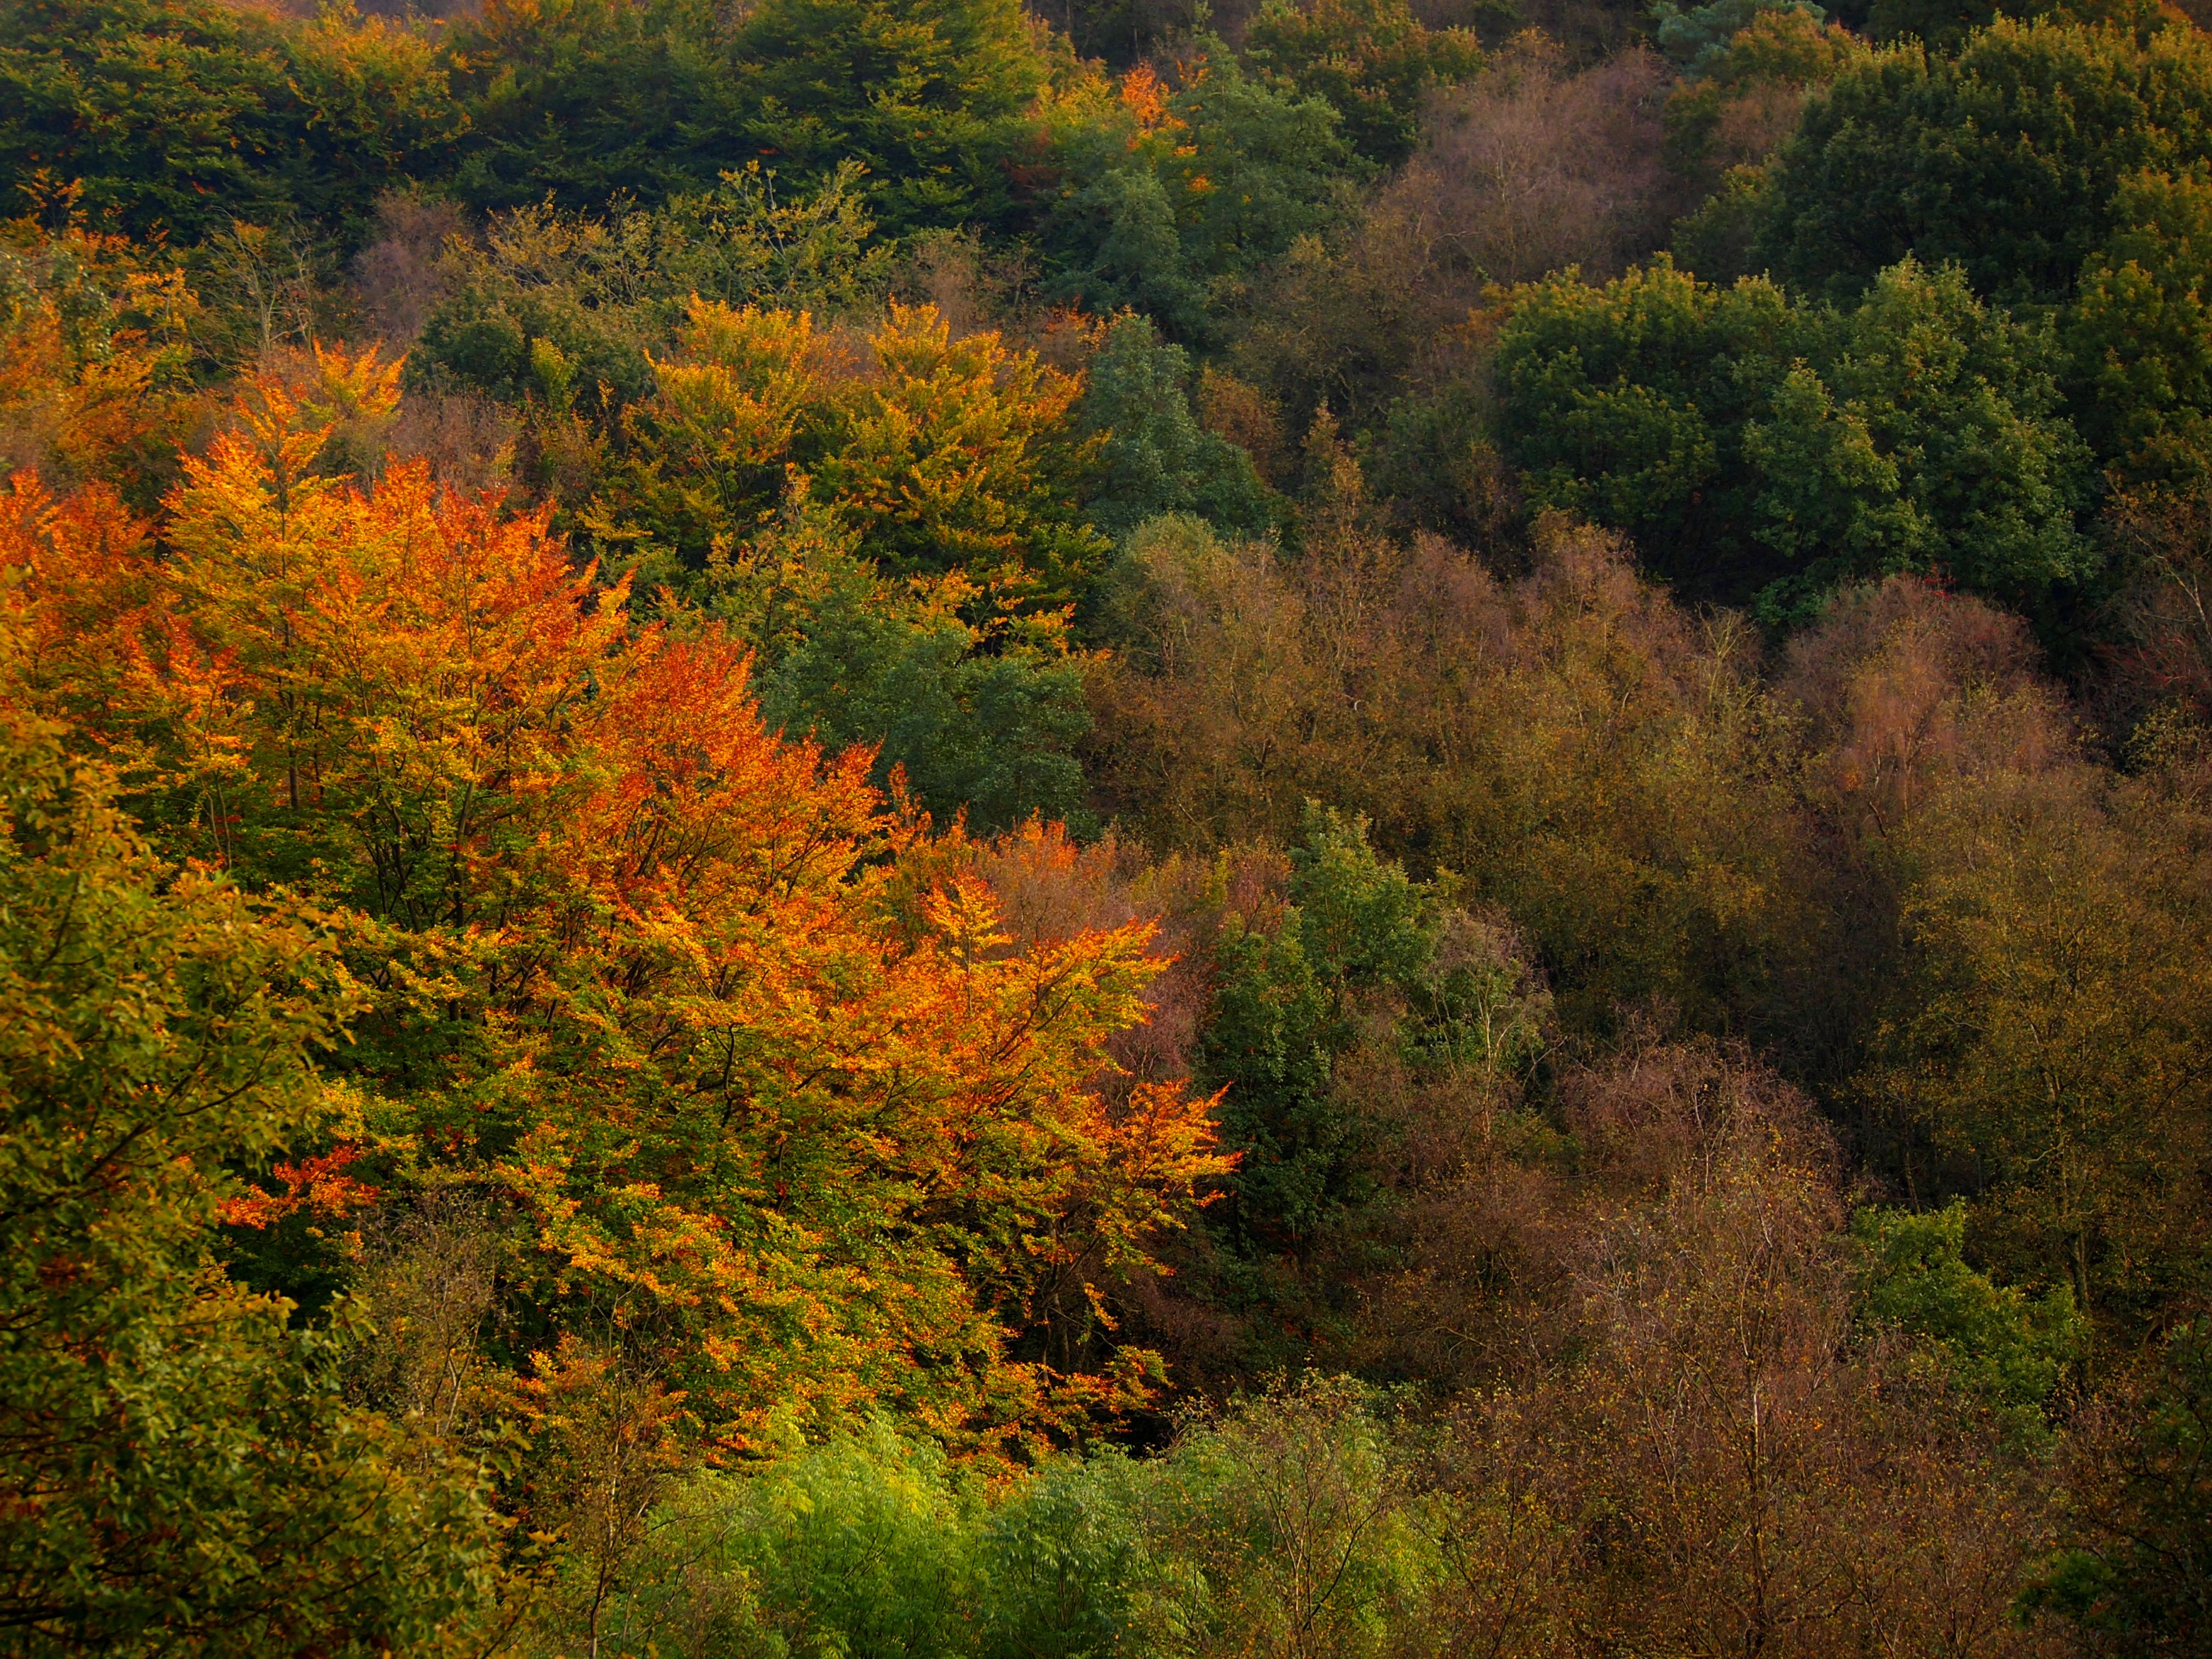 Autumnal Canopy at Coombes Valley